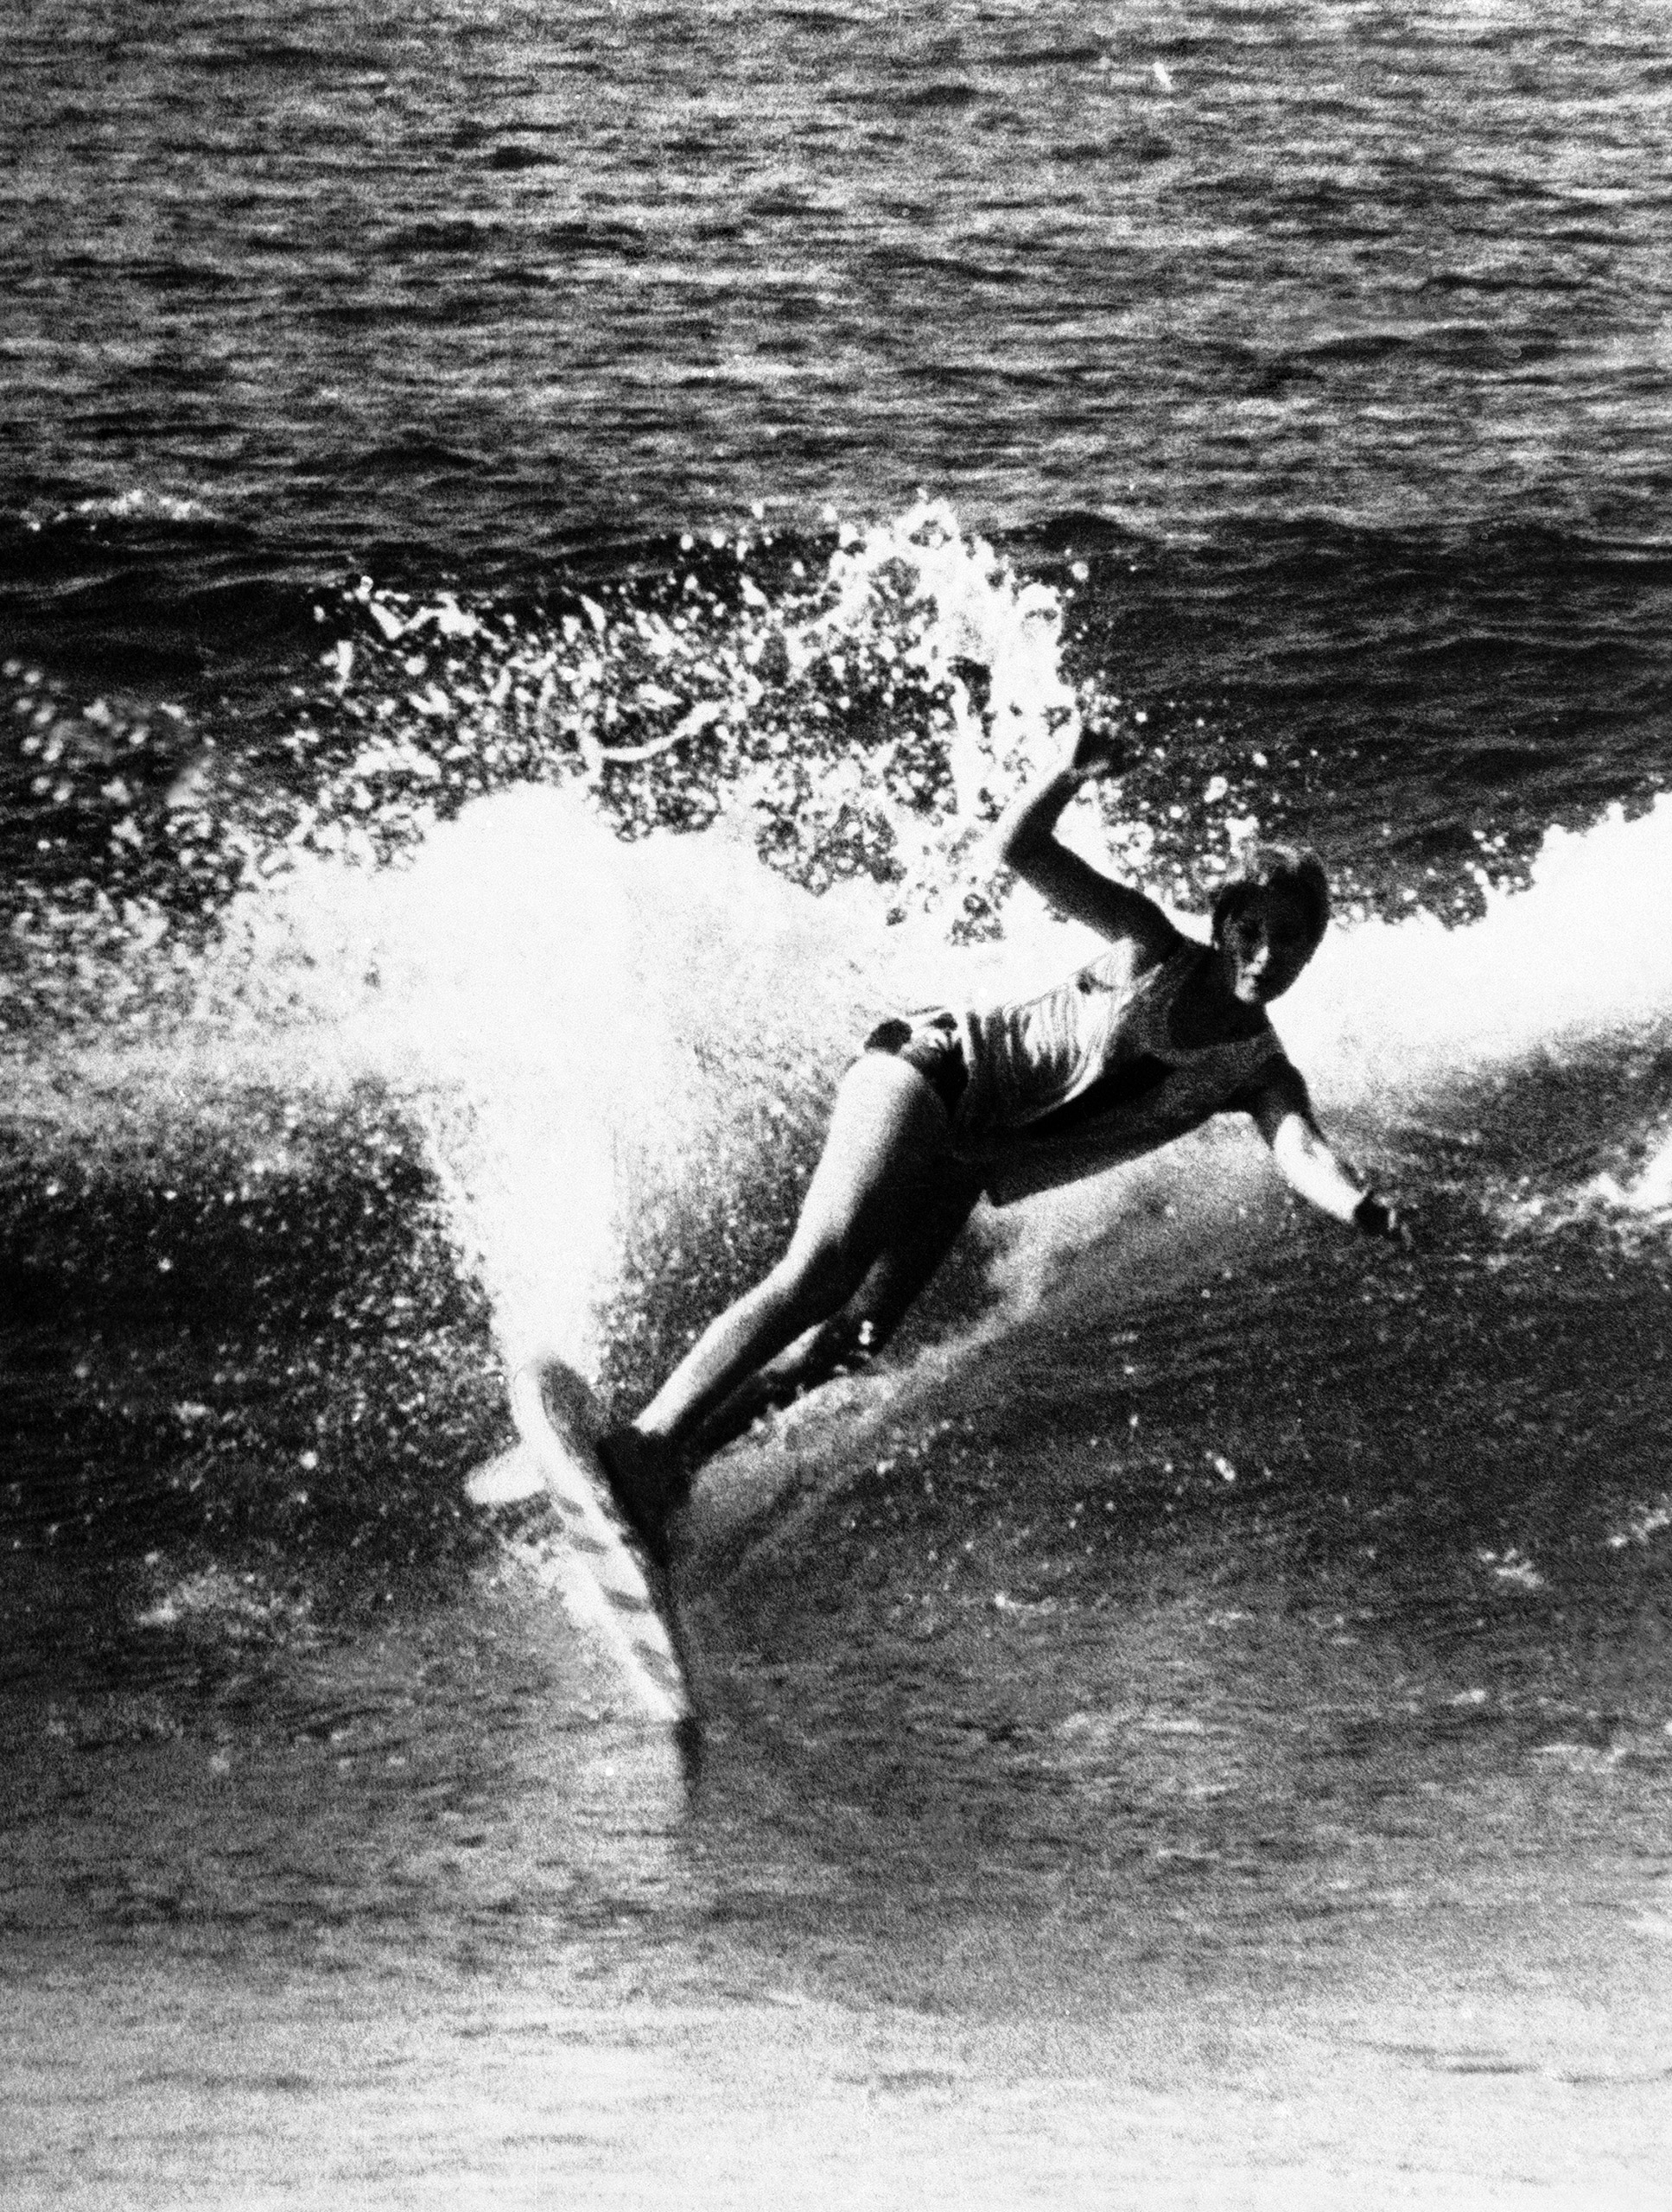 Linda Benson of the United States in competition for the women's title of the World Surfboard Riding Championships staged at Sydney's Manley Beach, Australia on May 17, 1964.